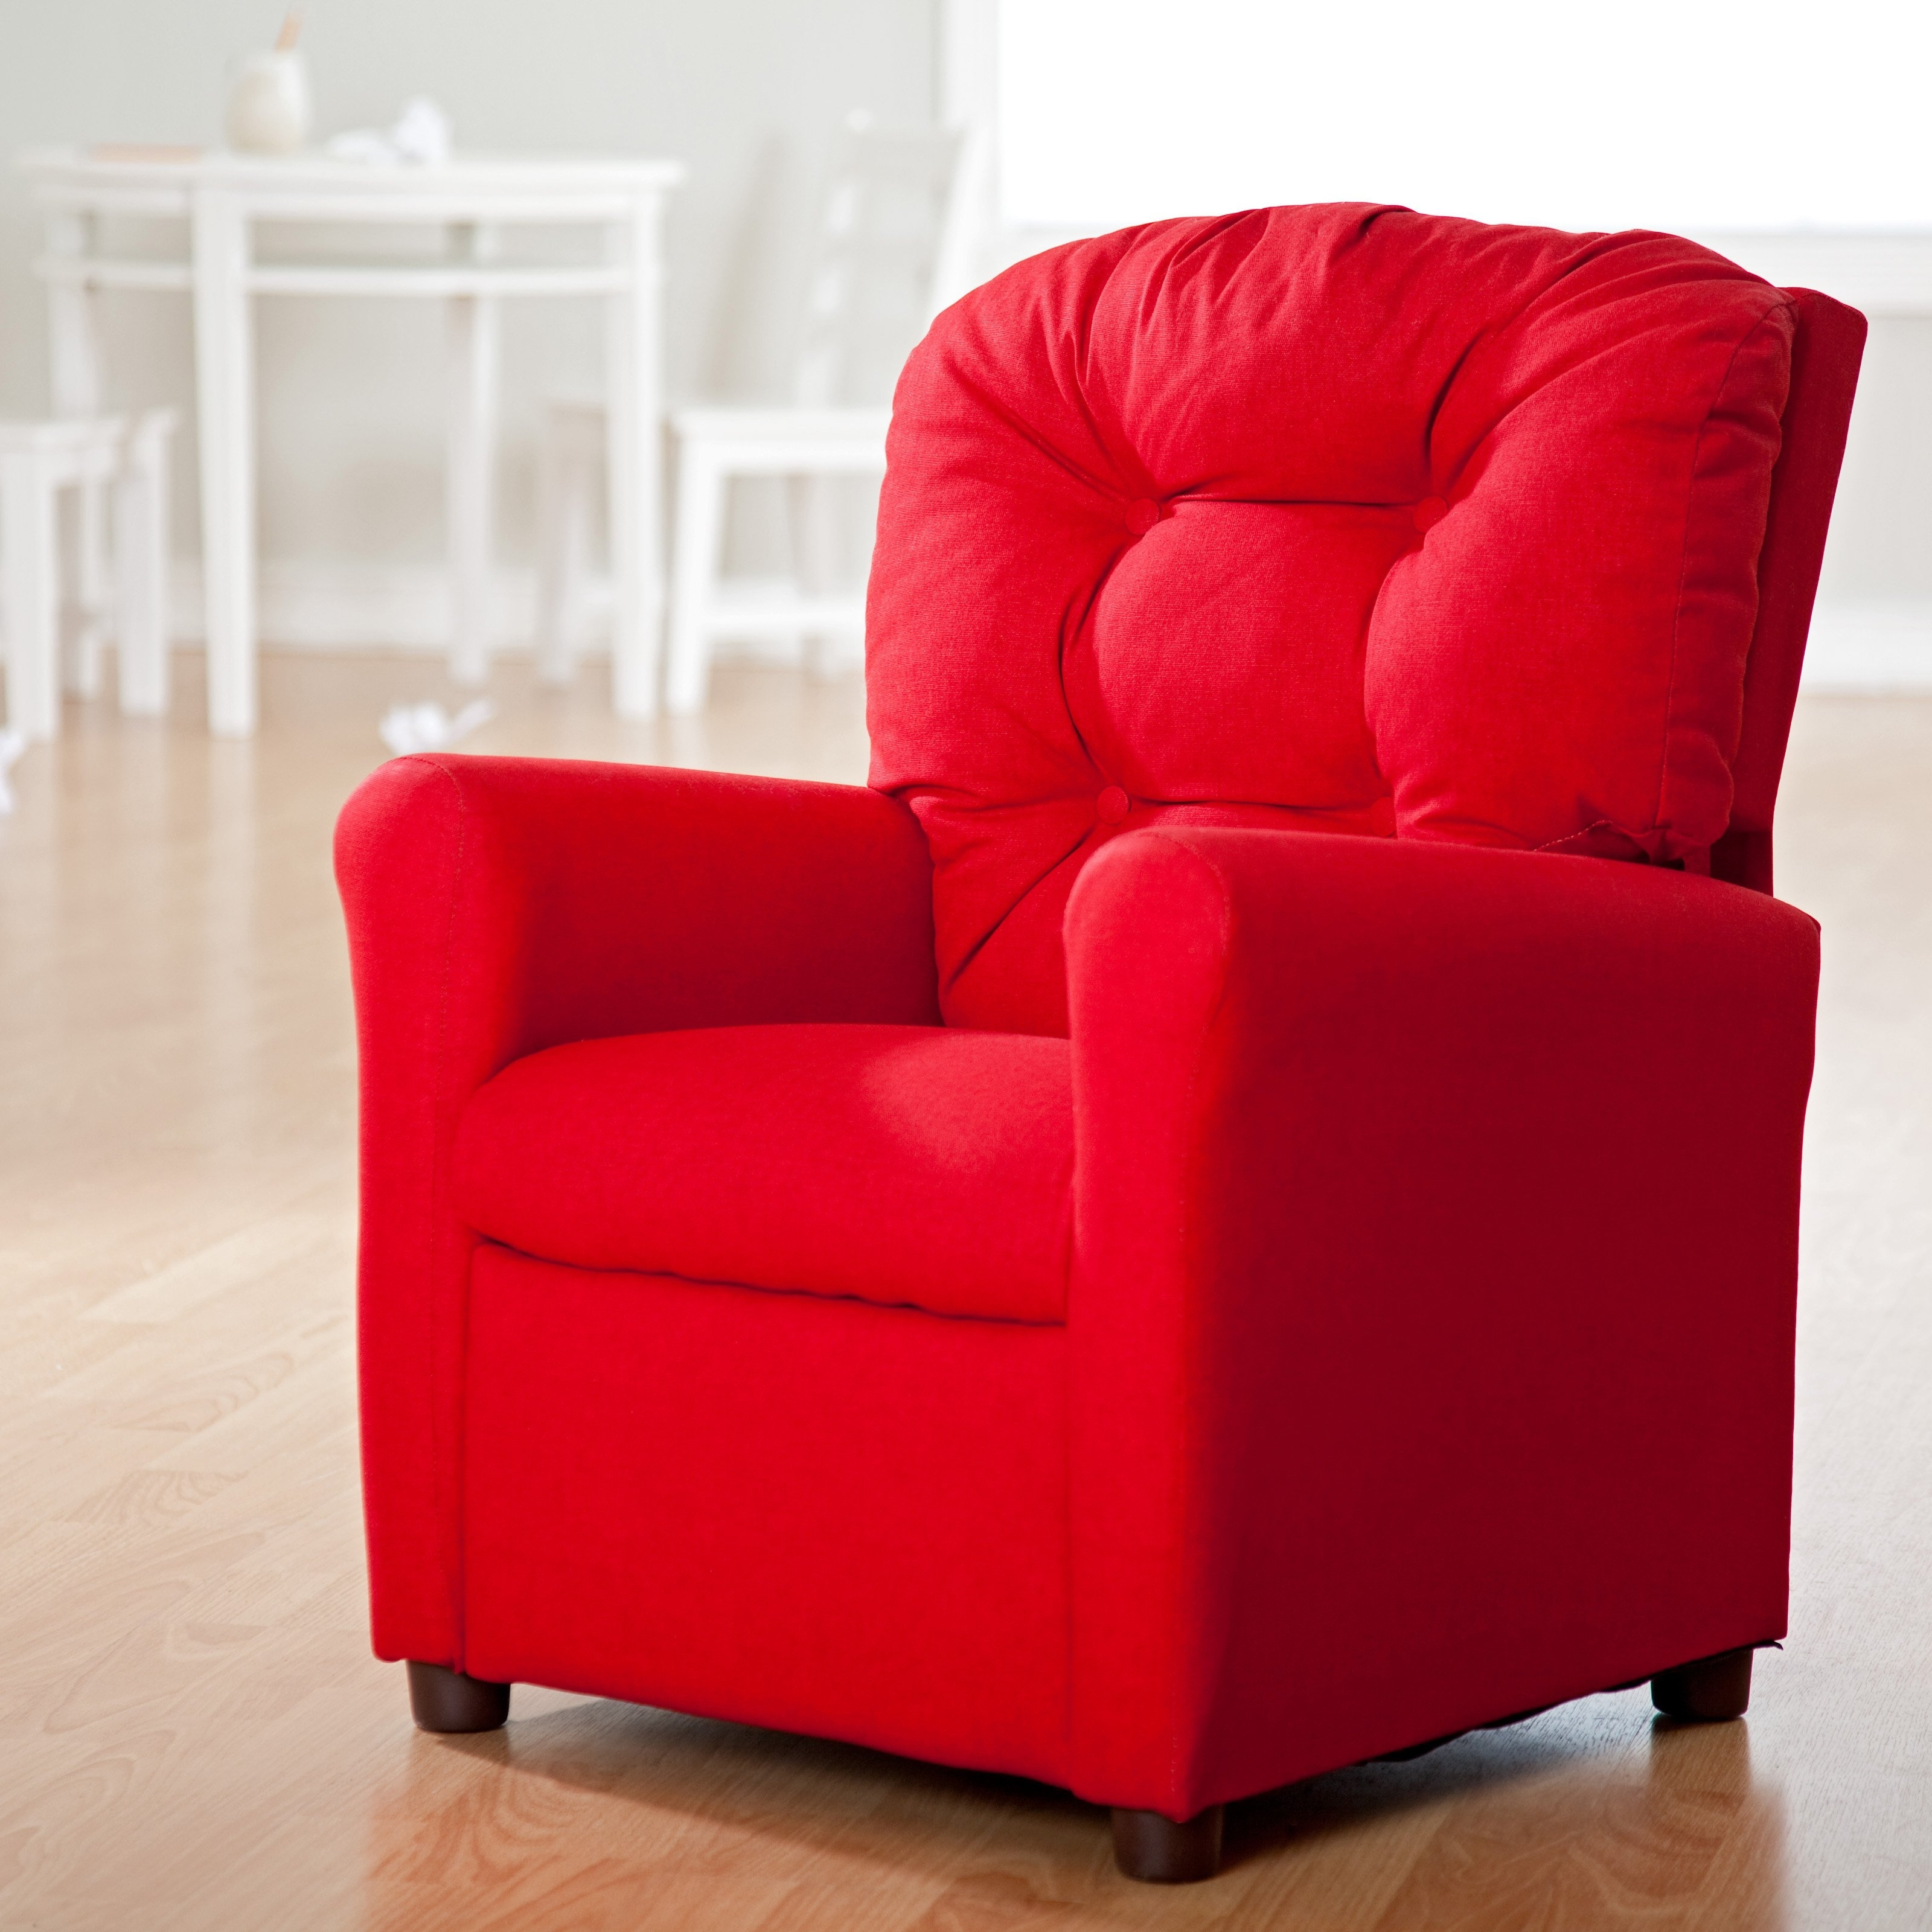 Armchair : Pottery Barn Anywhere Chair Review Kids Sofa Chair Kids Regarding Famous Personalized Kids Chairs And Sofas (View 4 of 15)